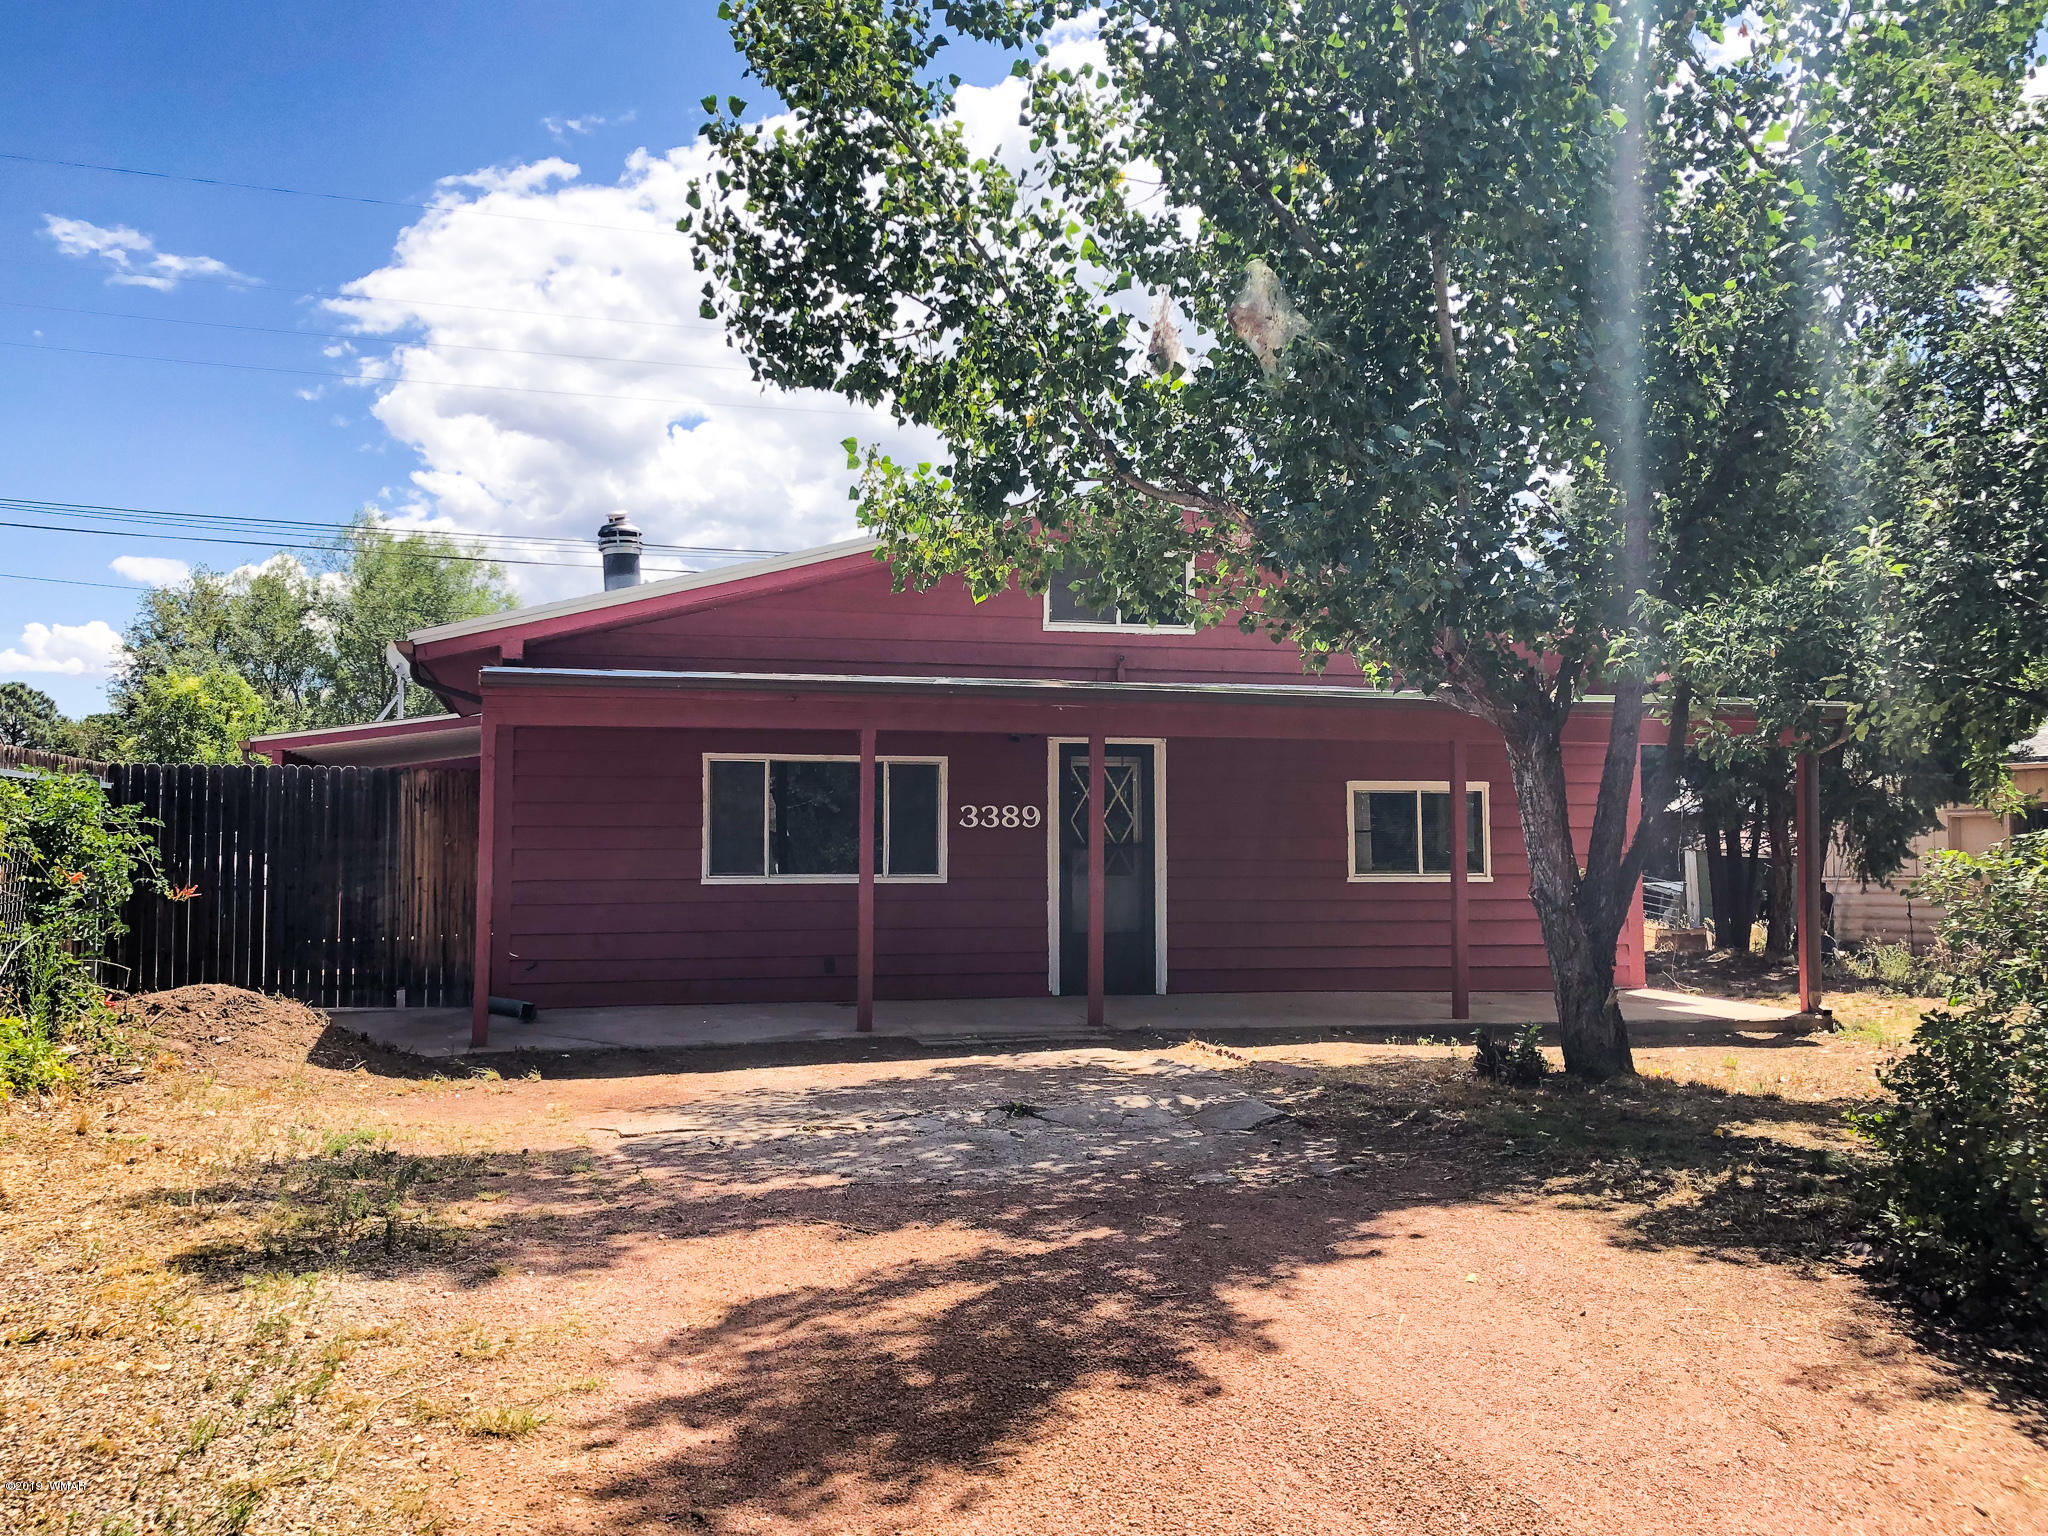 Looking to escape the heat? Look no further. This 2 bedroom, 1 bath home offers new interior paint and kitchen flooring. Enjoy the established trees, rear property privacy fencing and front covered patio. Bring the toys, No HOA. Full-time or part-time use. Close to forest service trails and local services. Make this property yours today!